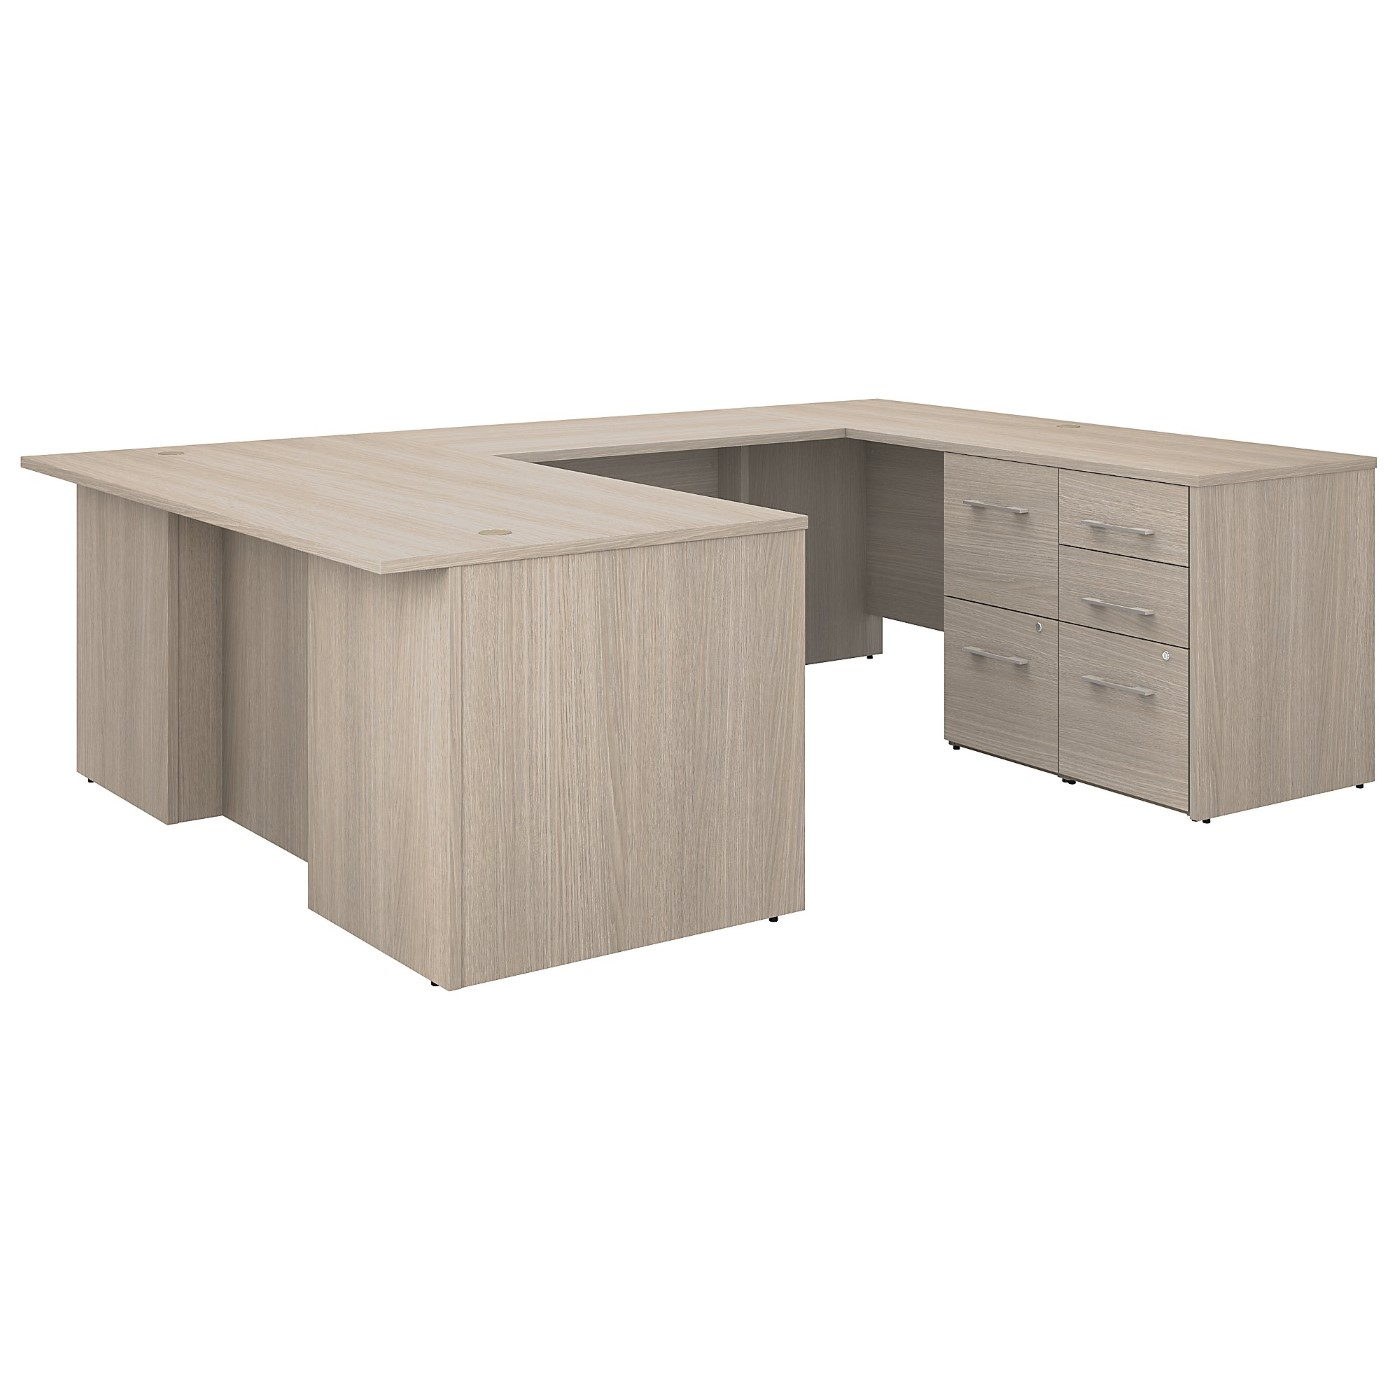 BUSH BUSINESS FURNITURE OFFICE 500 72W U SHAPED EXECUTIVE DESK WITH DRAWERS. FREE SHIPPING SALE DEDUCT 10% MORE ENTER '10percent' IN COUPON CODE BOX WHILE CHECKING OUT.